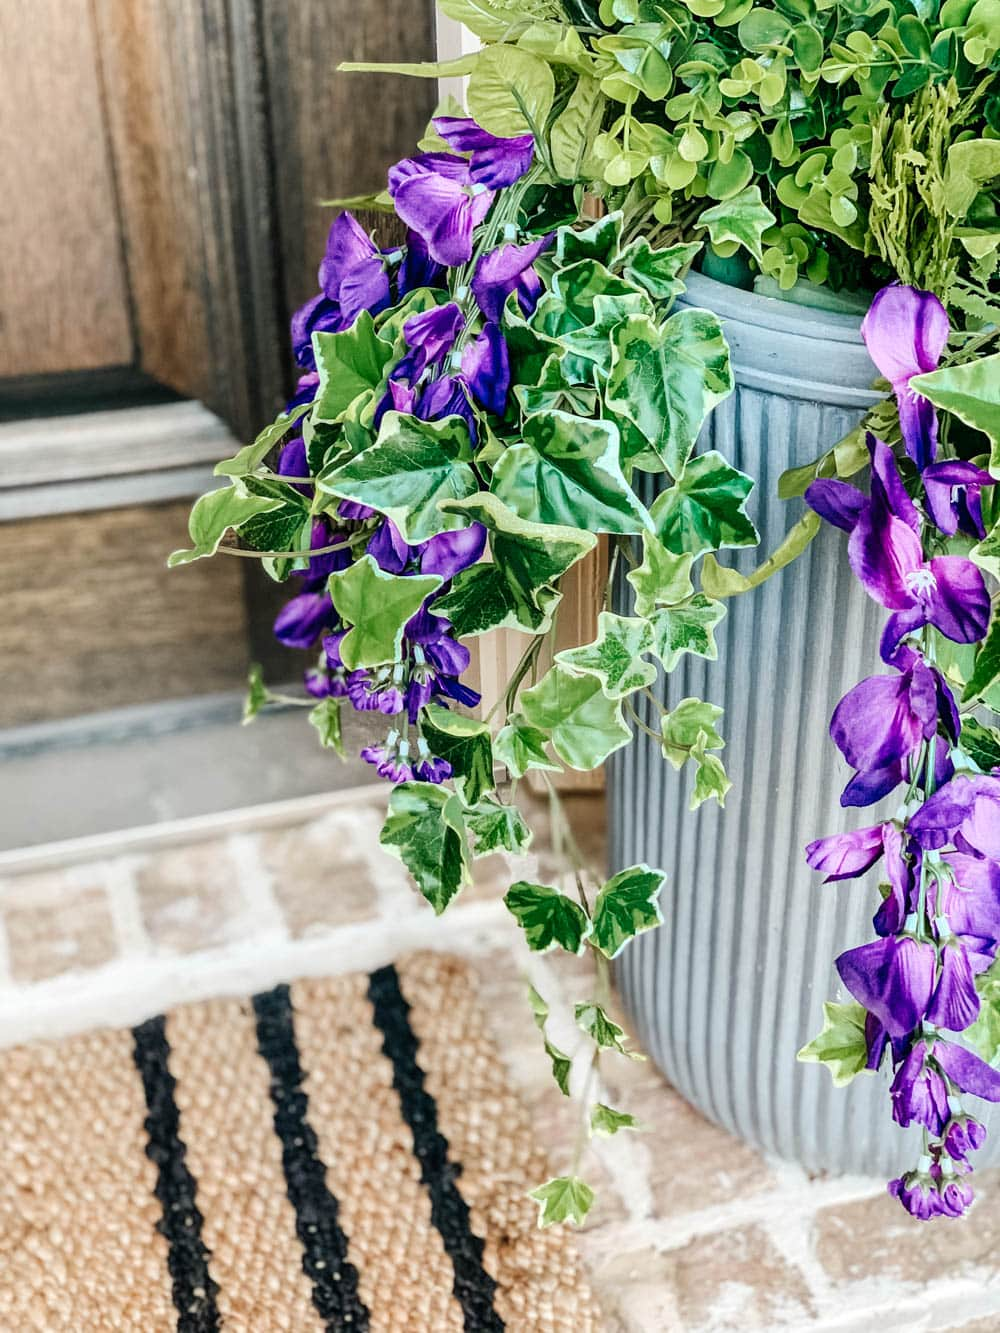 Tutorial on how to arrange and use artificial flowers and plants in outdoor planters. #ABlissfulNest #gardening #outdoorplanters